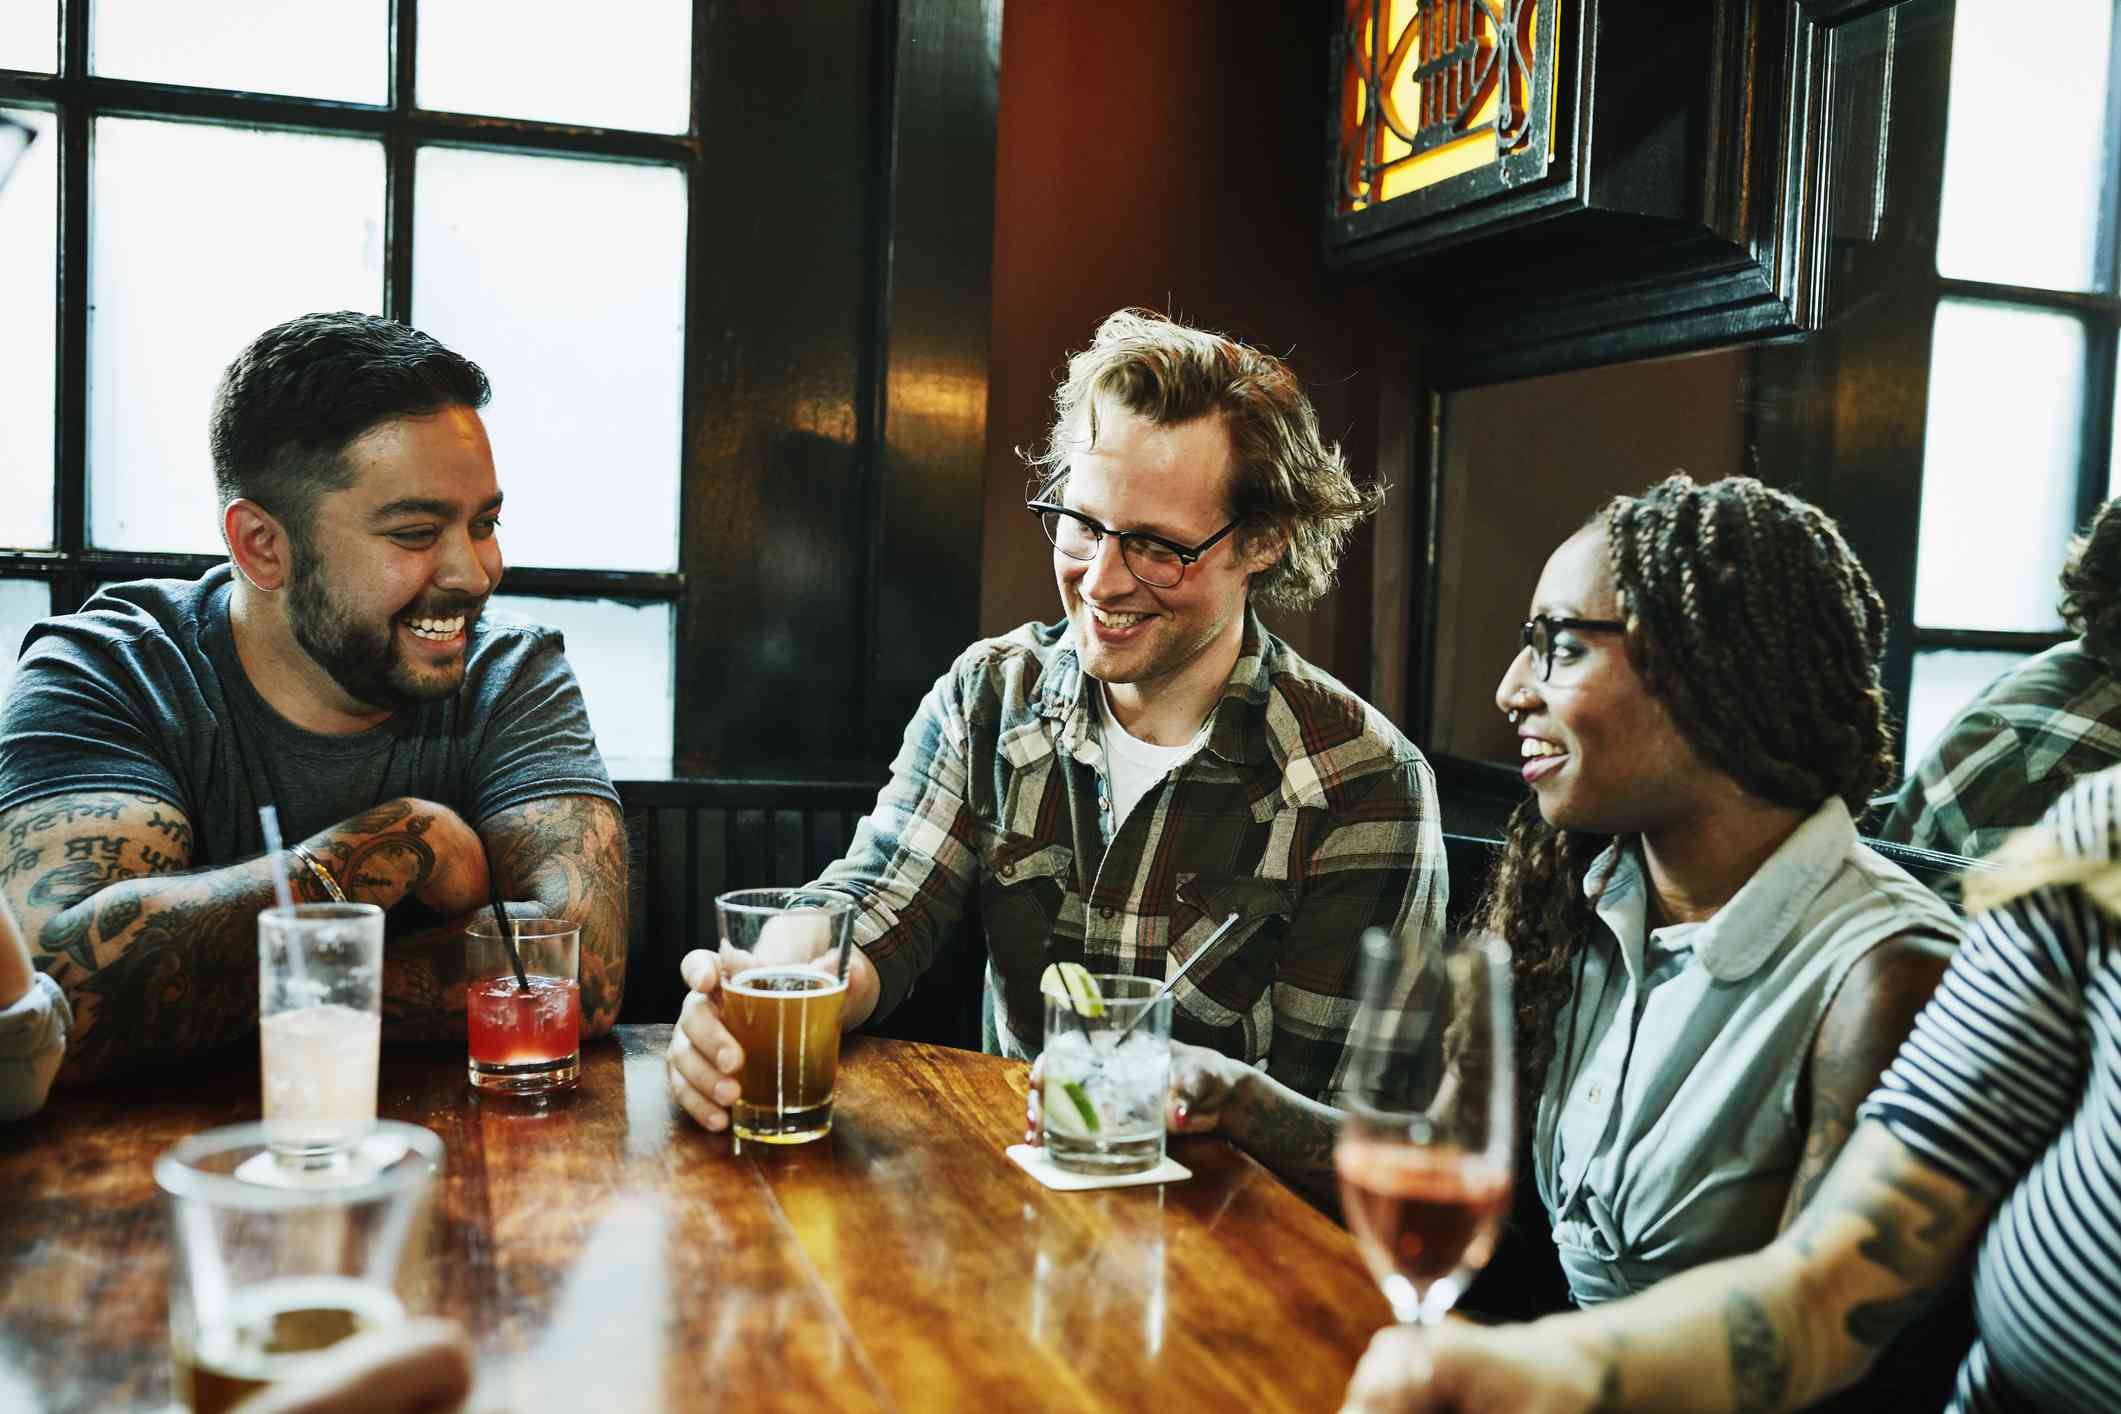 Laughing friends in discussion while sharing drinks at table in bar